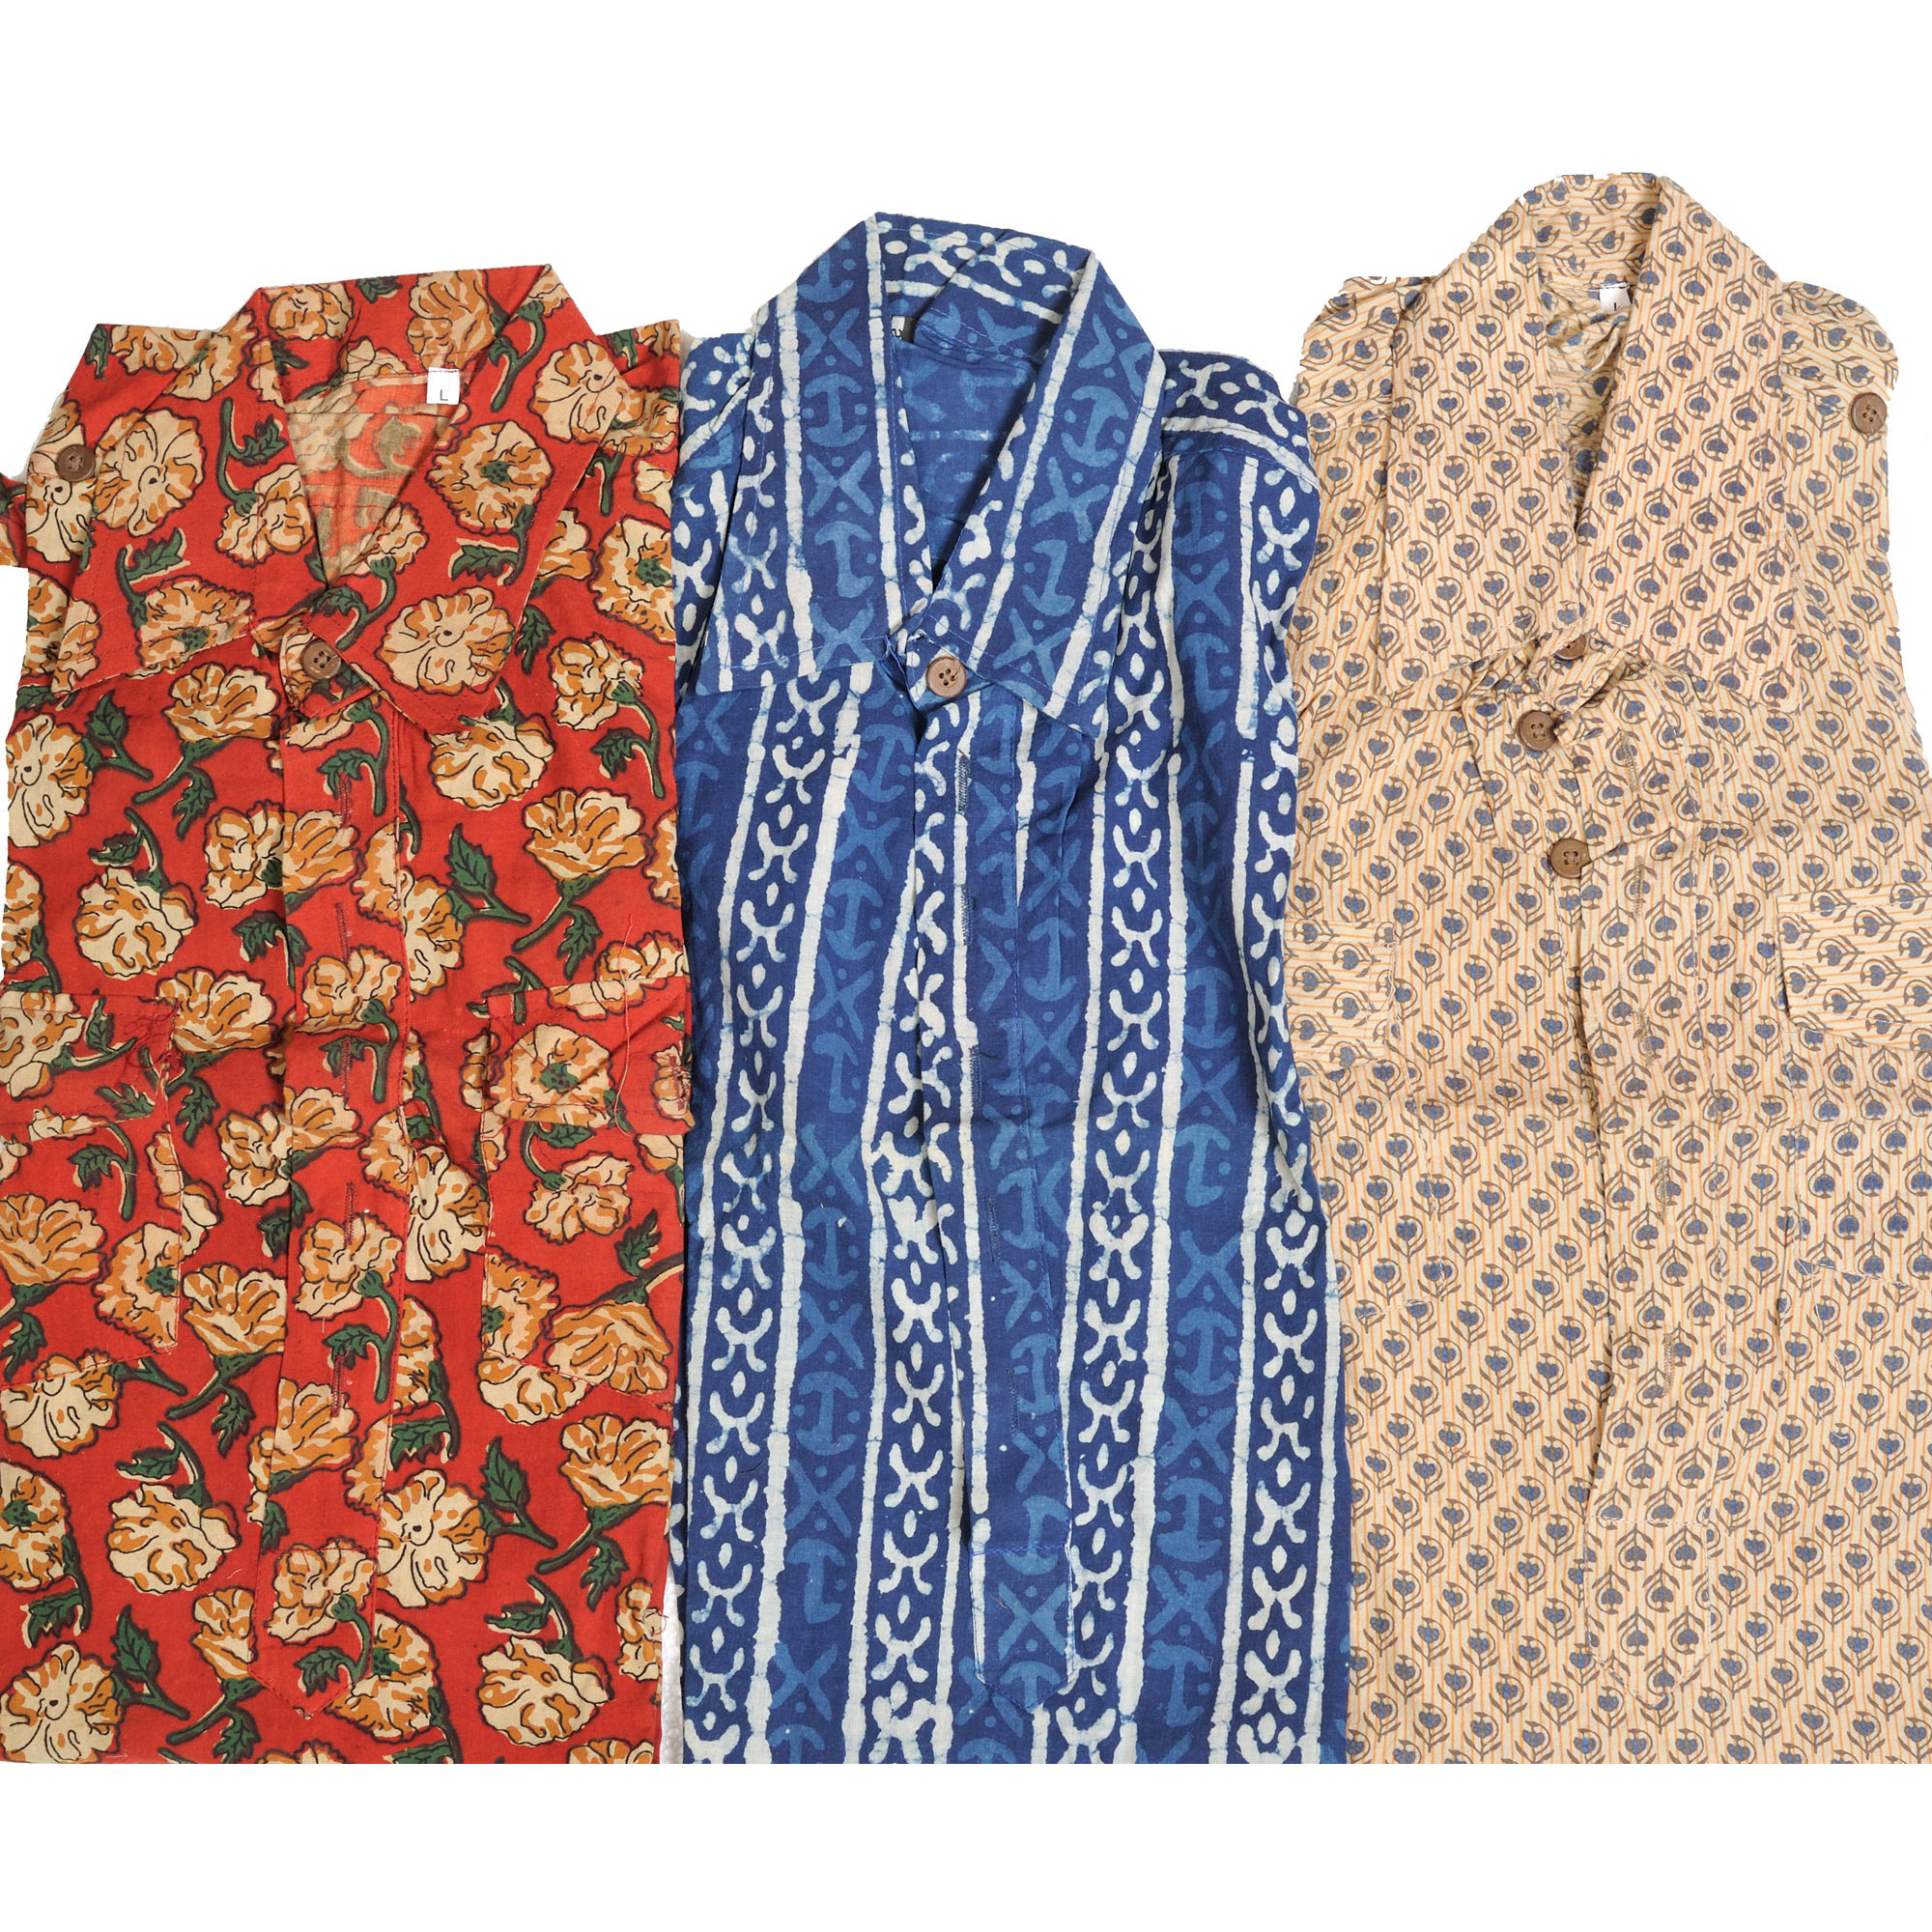 Lot of Three Block-Printed Collared Kurti Tops from Pilkhuwa